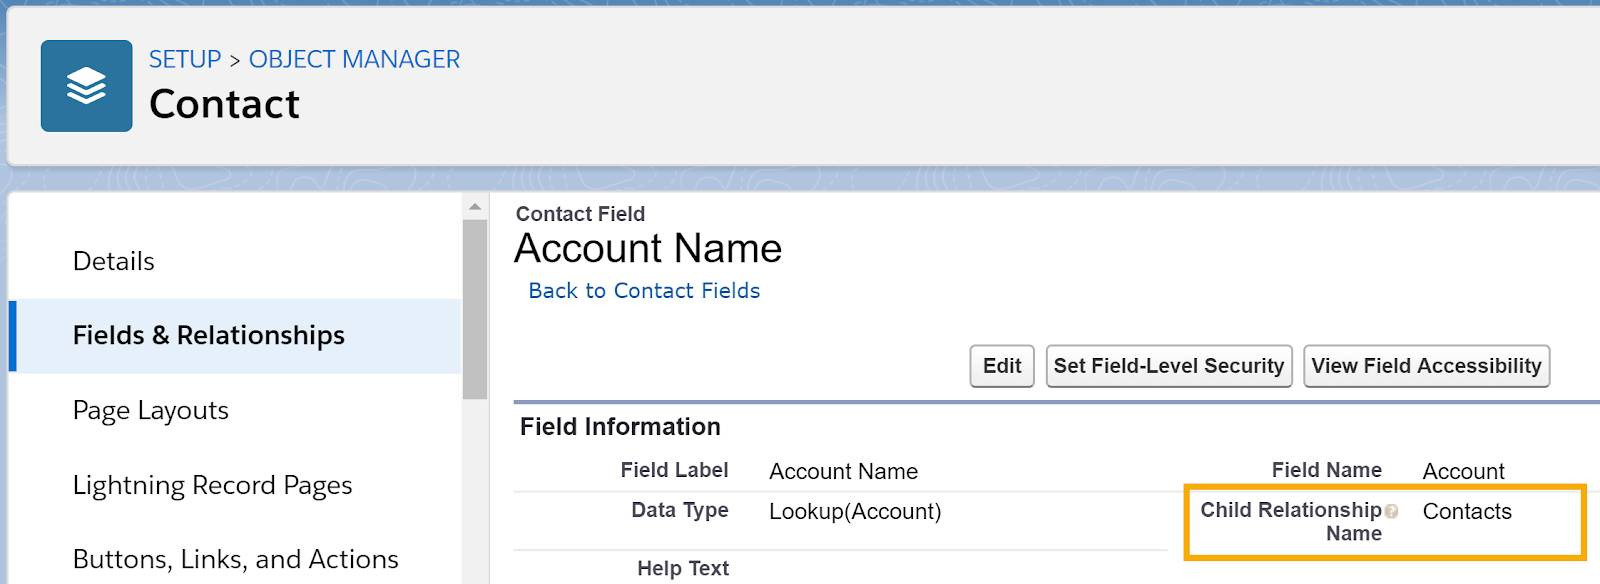 Details for the Account Name field on the Contact object, highlighting the Child Relationship Name, which is Contacts.